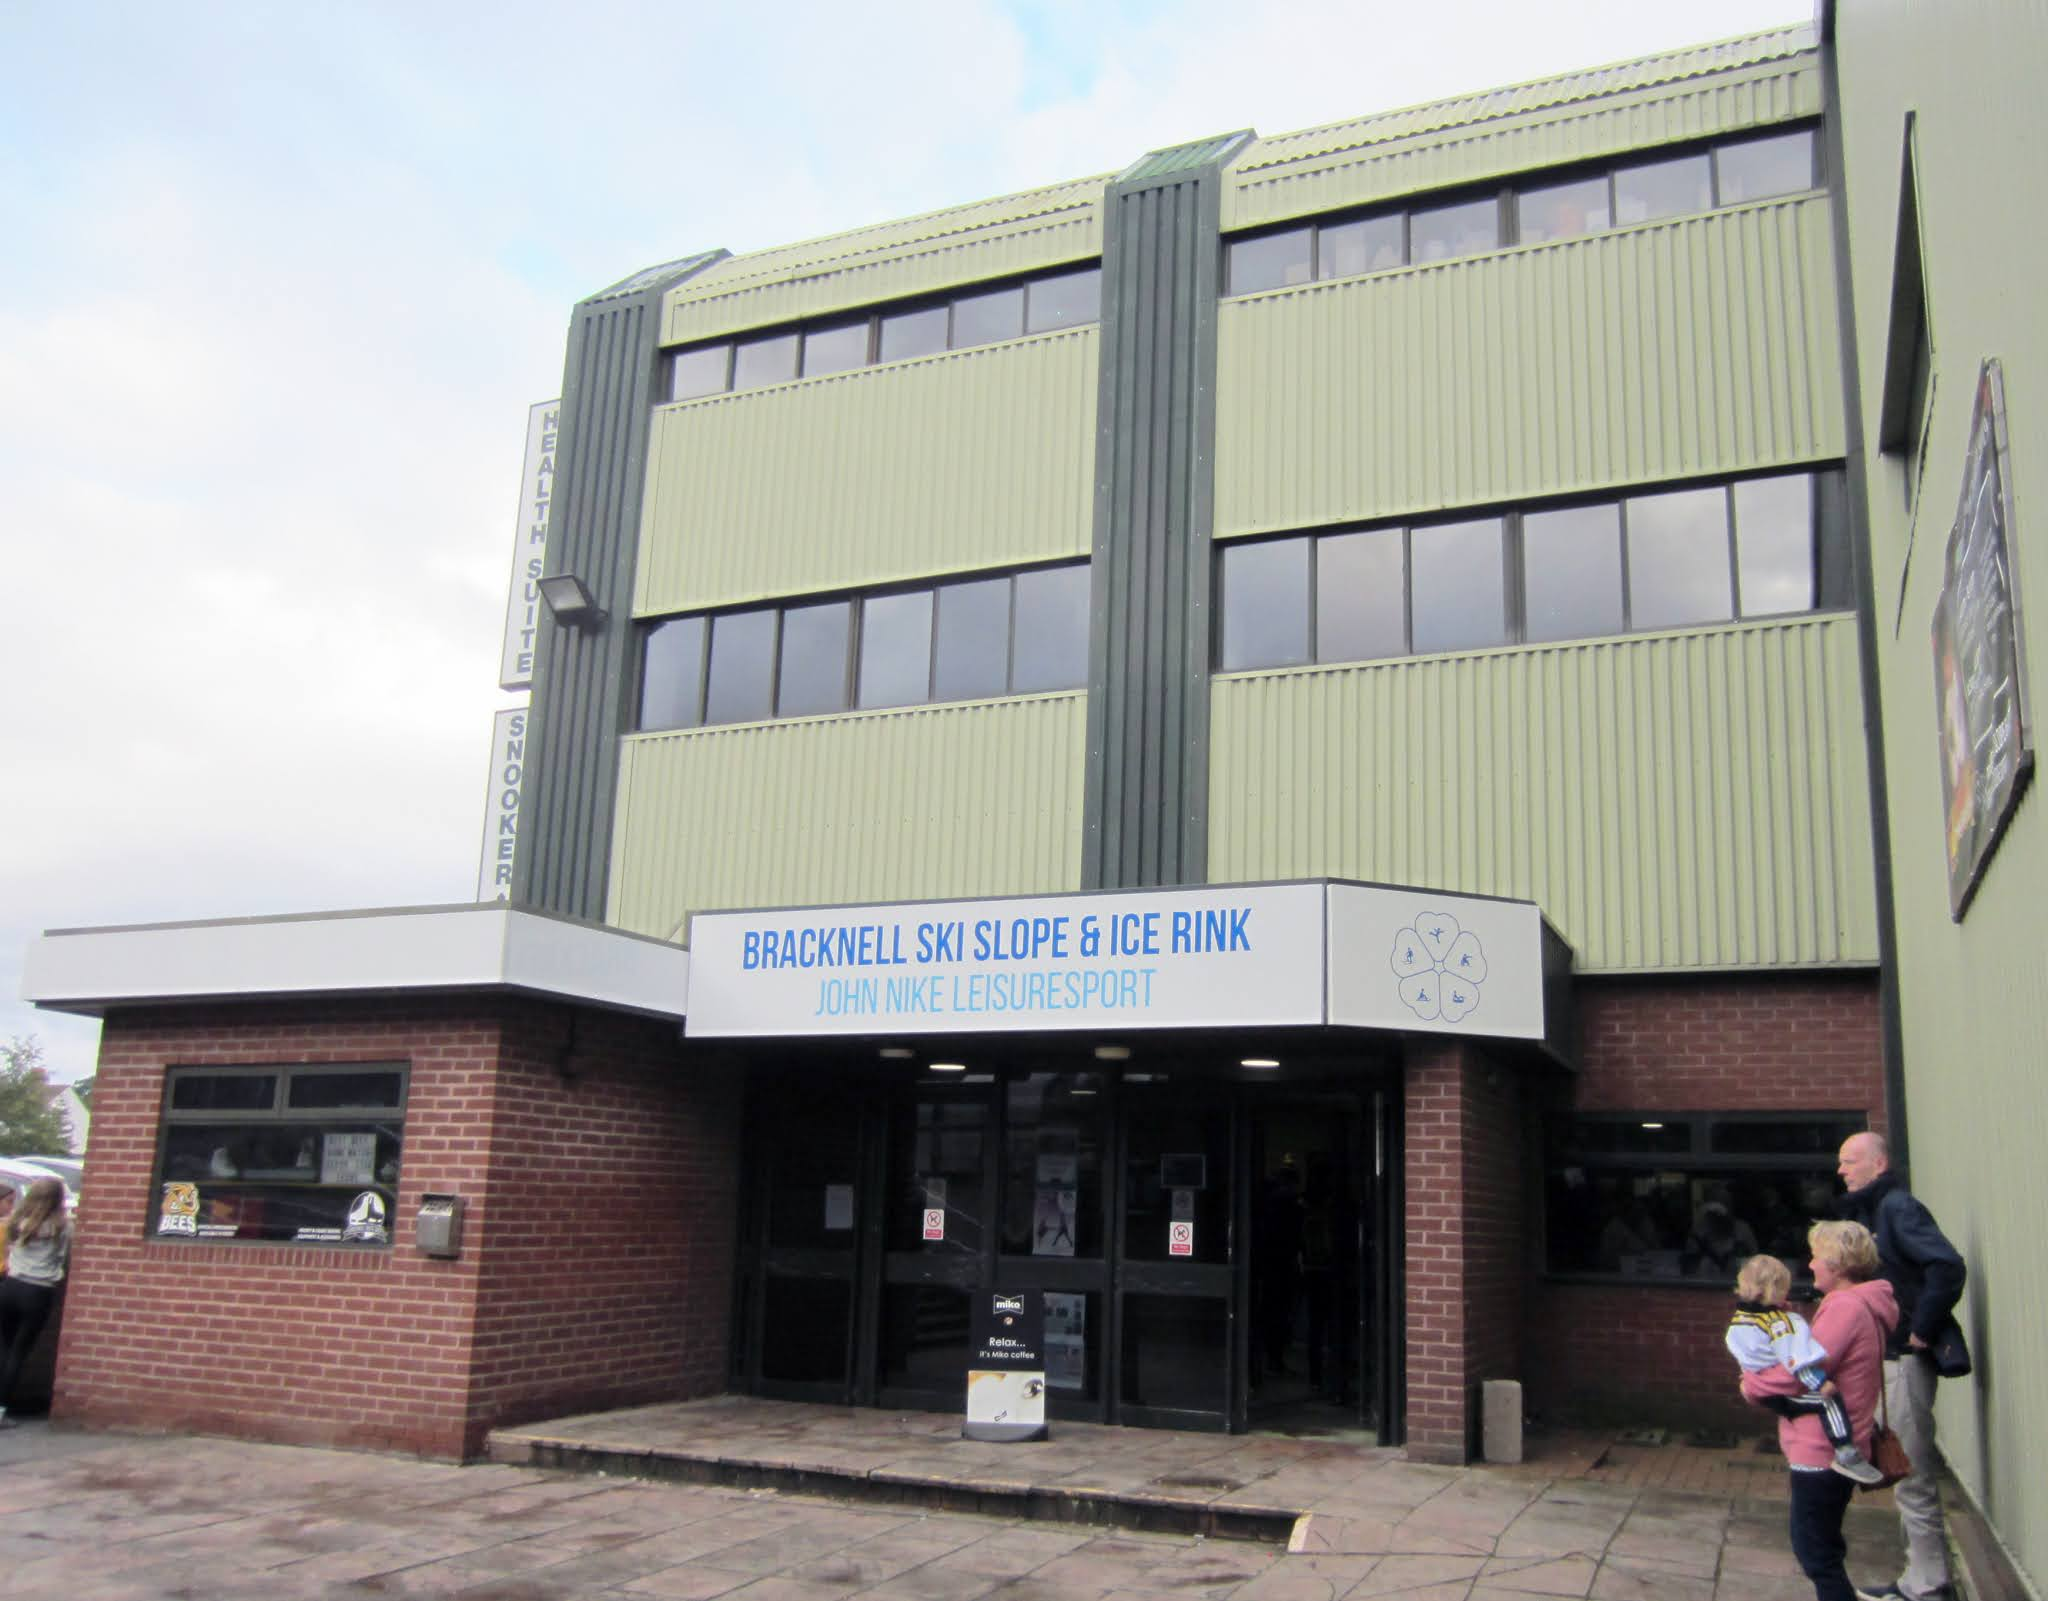 Main entrance to the Bracknell Ice Rink